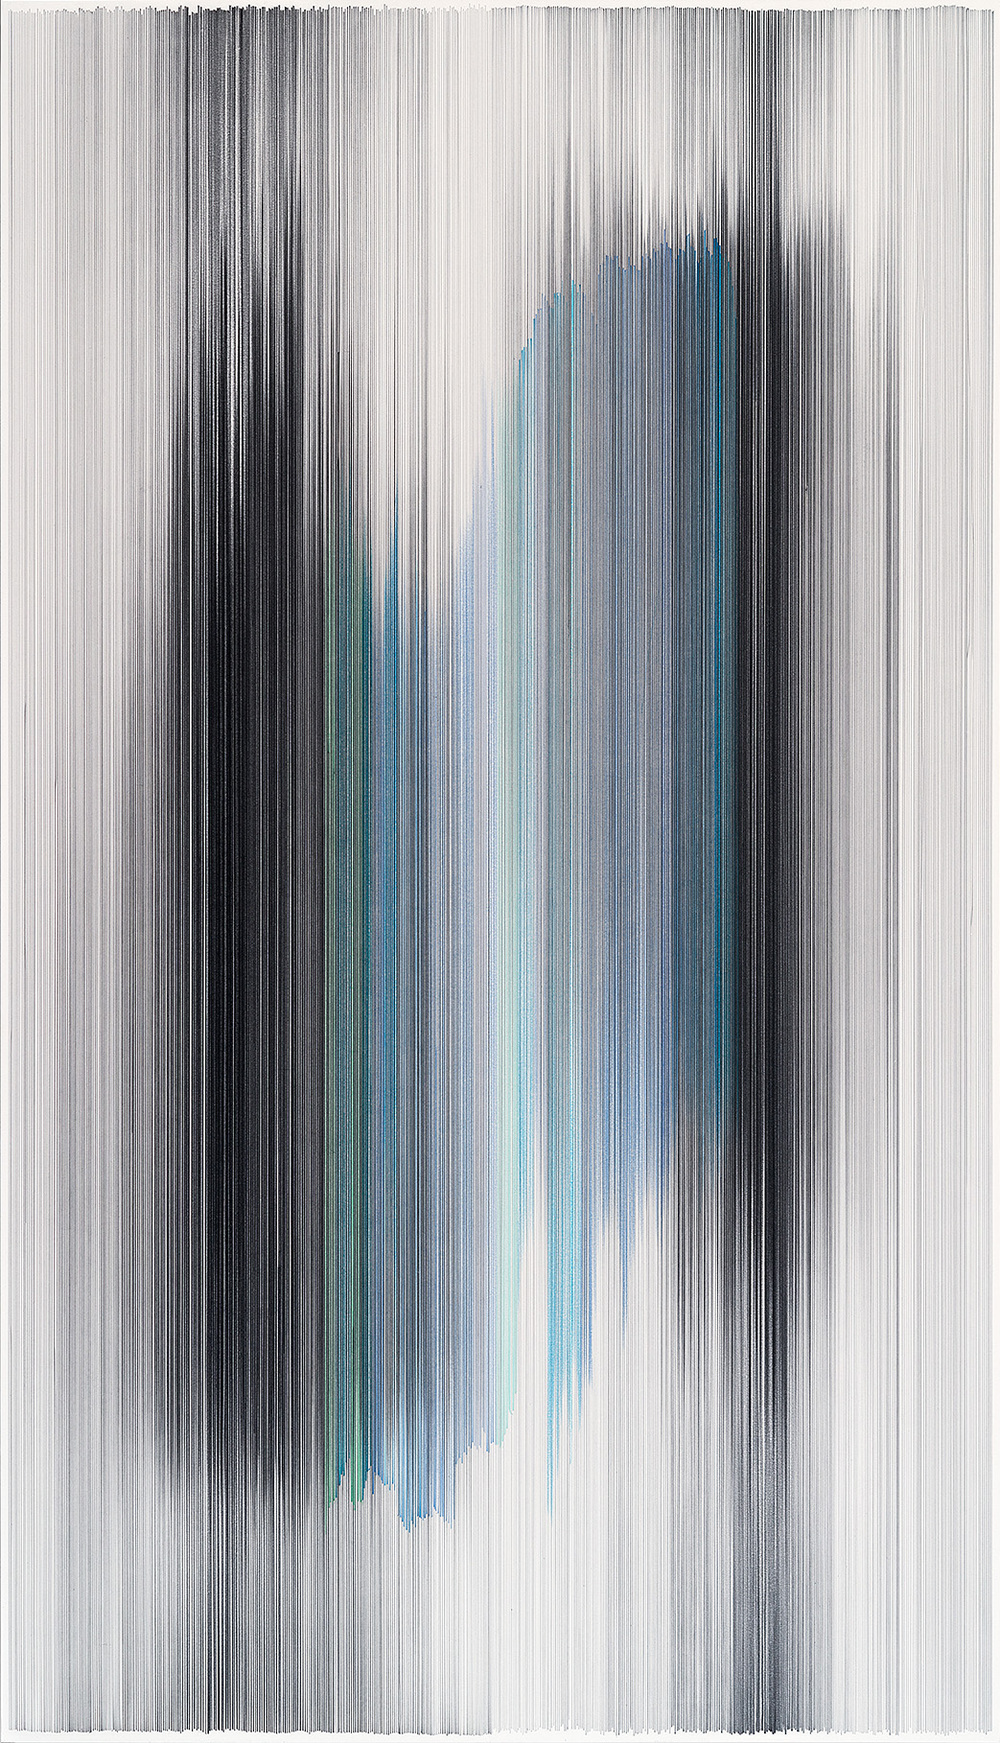 parallel 41  2014 graphite & colored pencil on mat board 34 by 59 inches